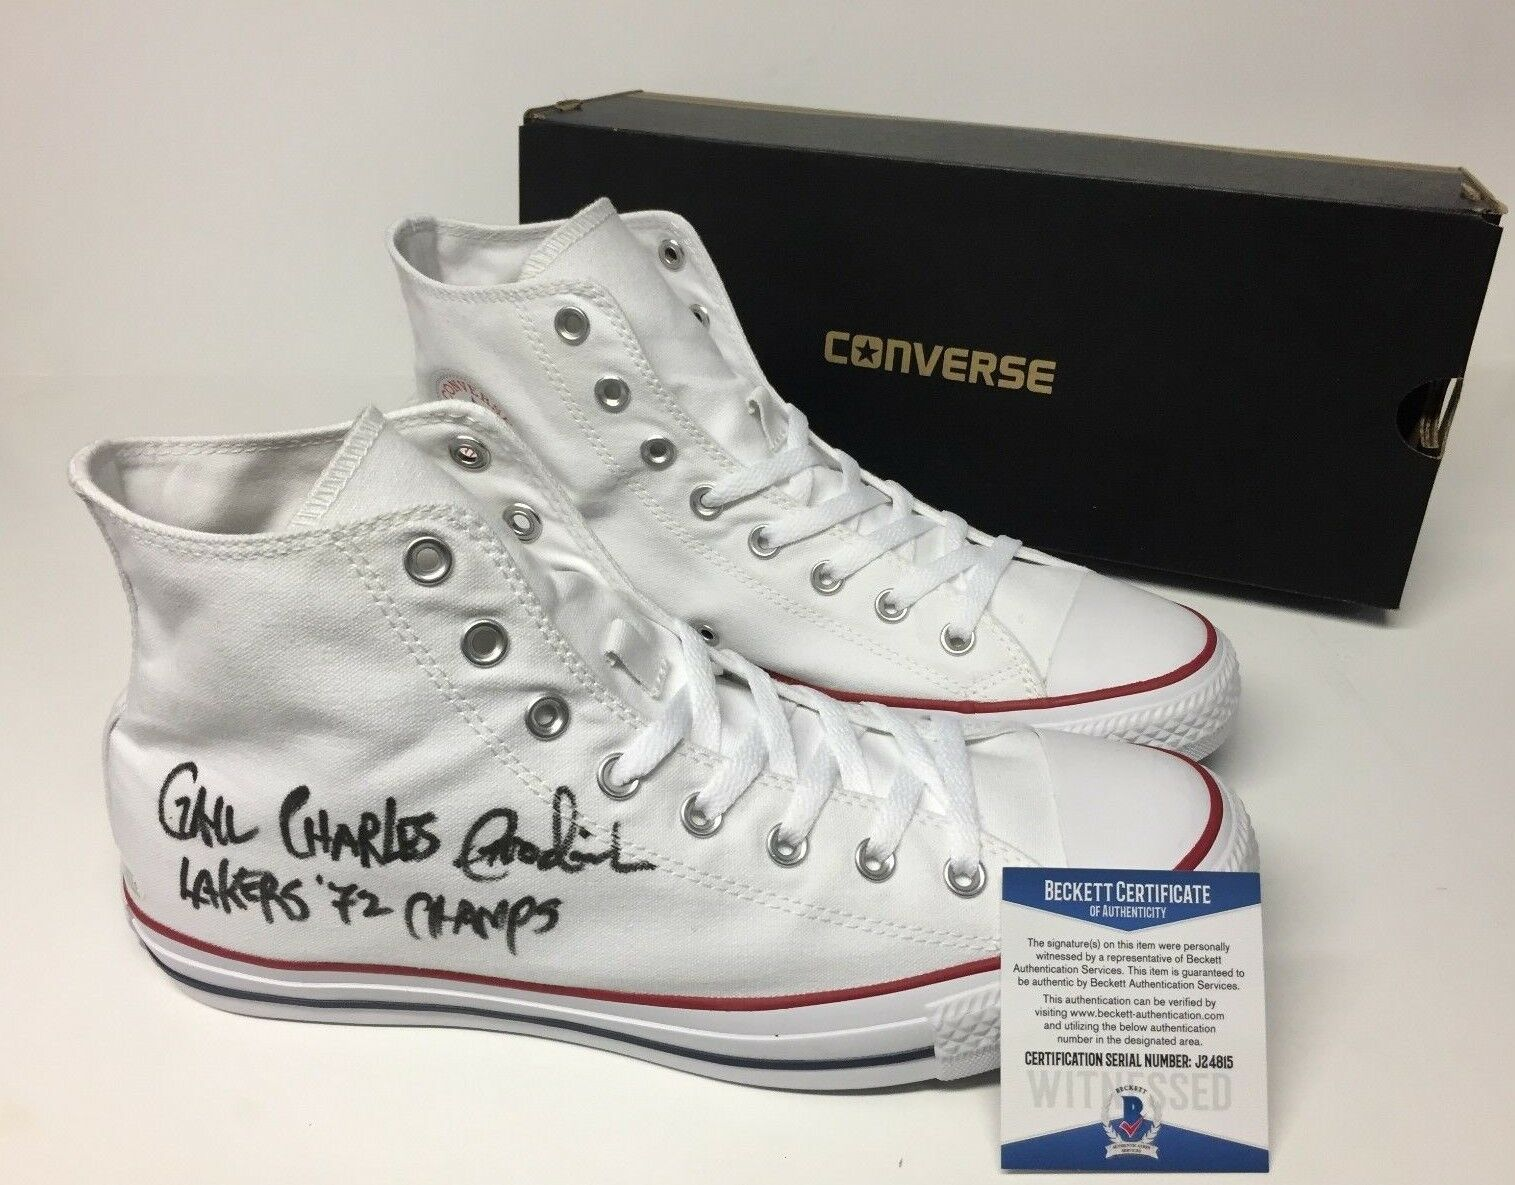 Gail Goodrich Signed Converse All Star Basketball Shoes